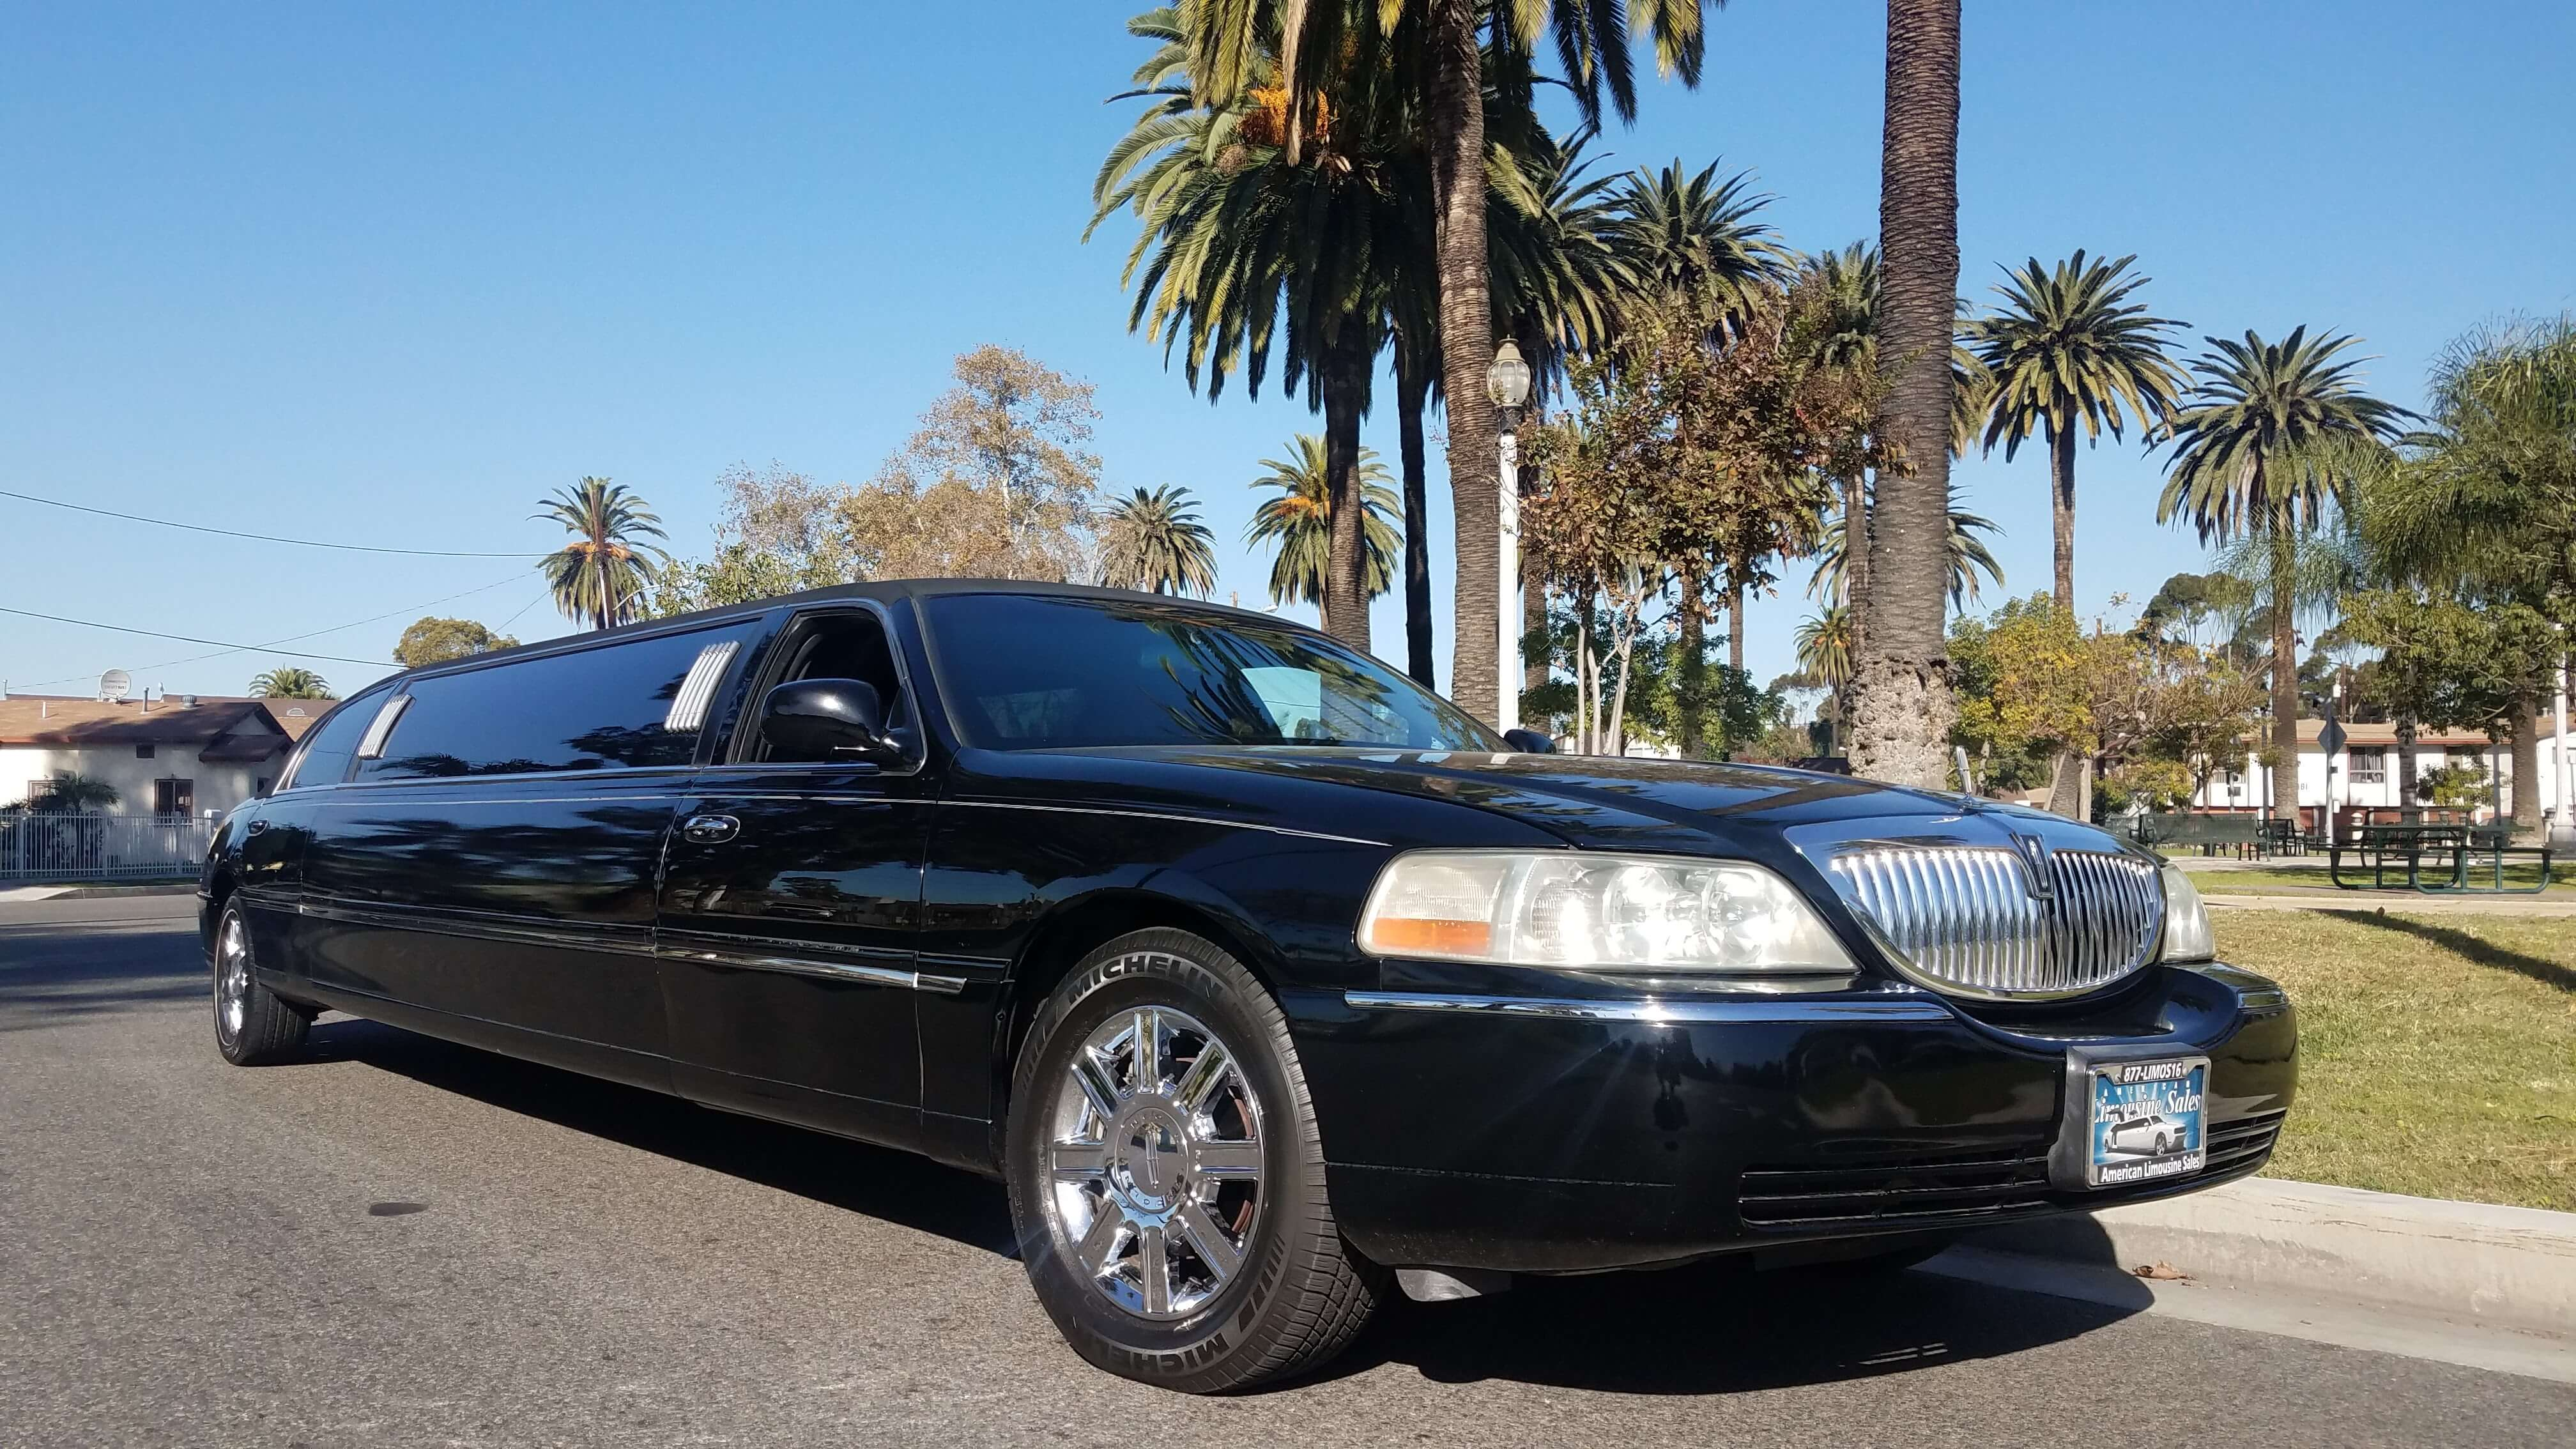 2008 black120 inch lincoln town car limousine for sale